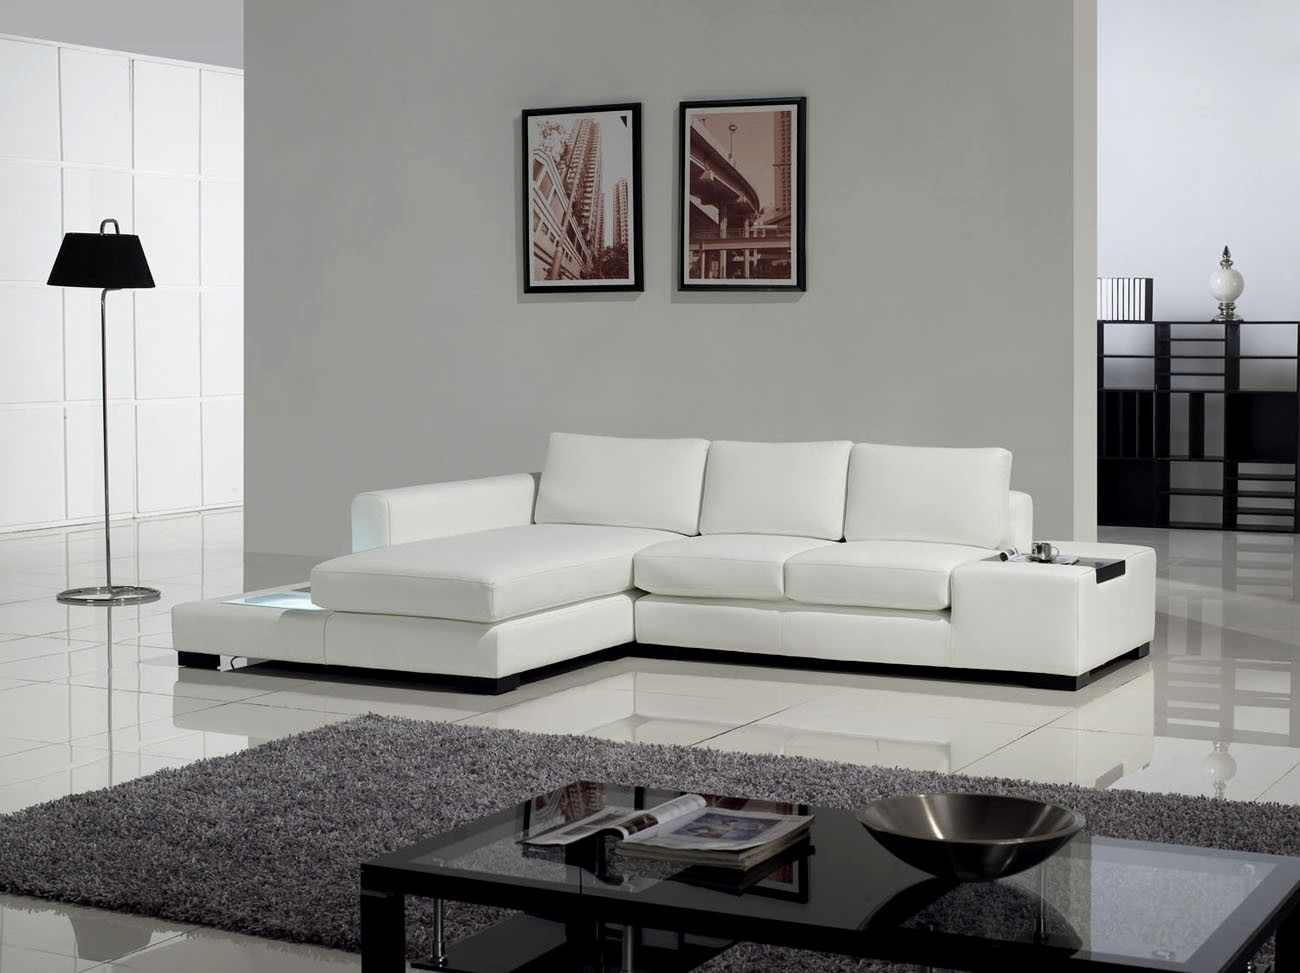 best mathis brothers sofas photograph-Fancy Mathis Brothers sofas Wallpaper